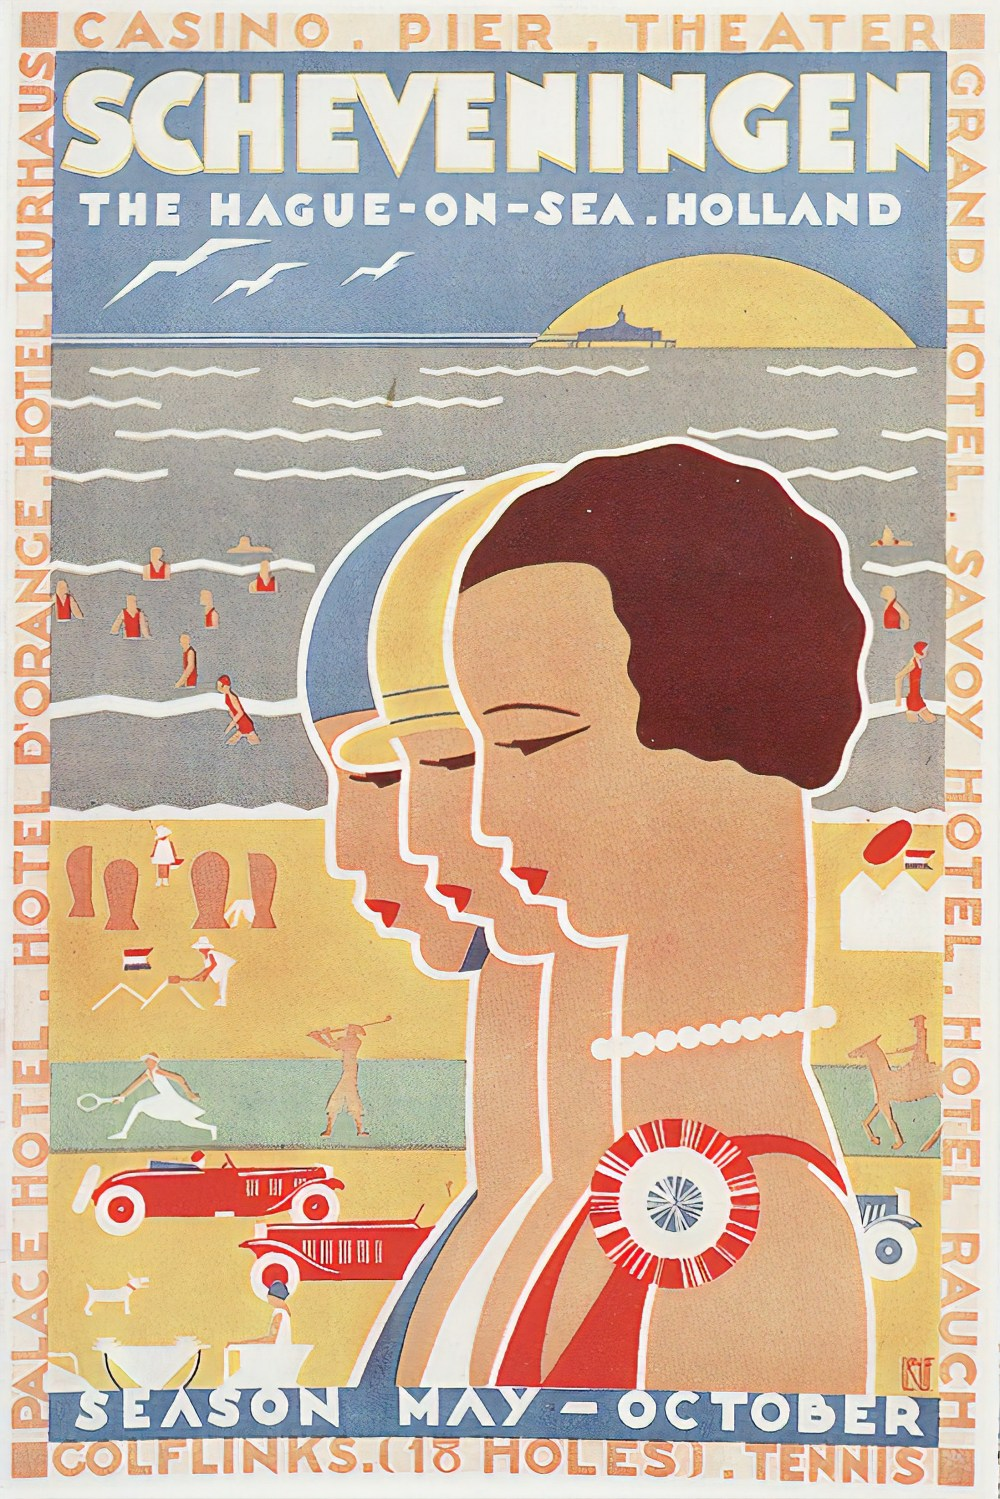 1930s poster from Holland